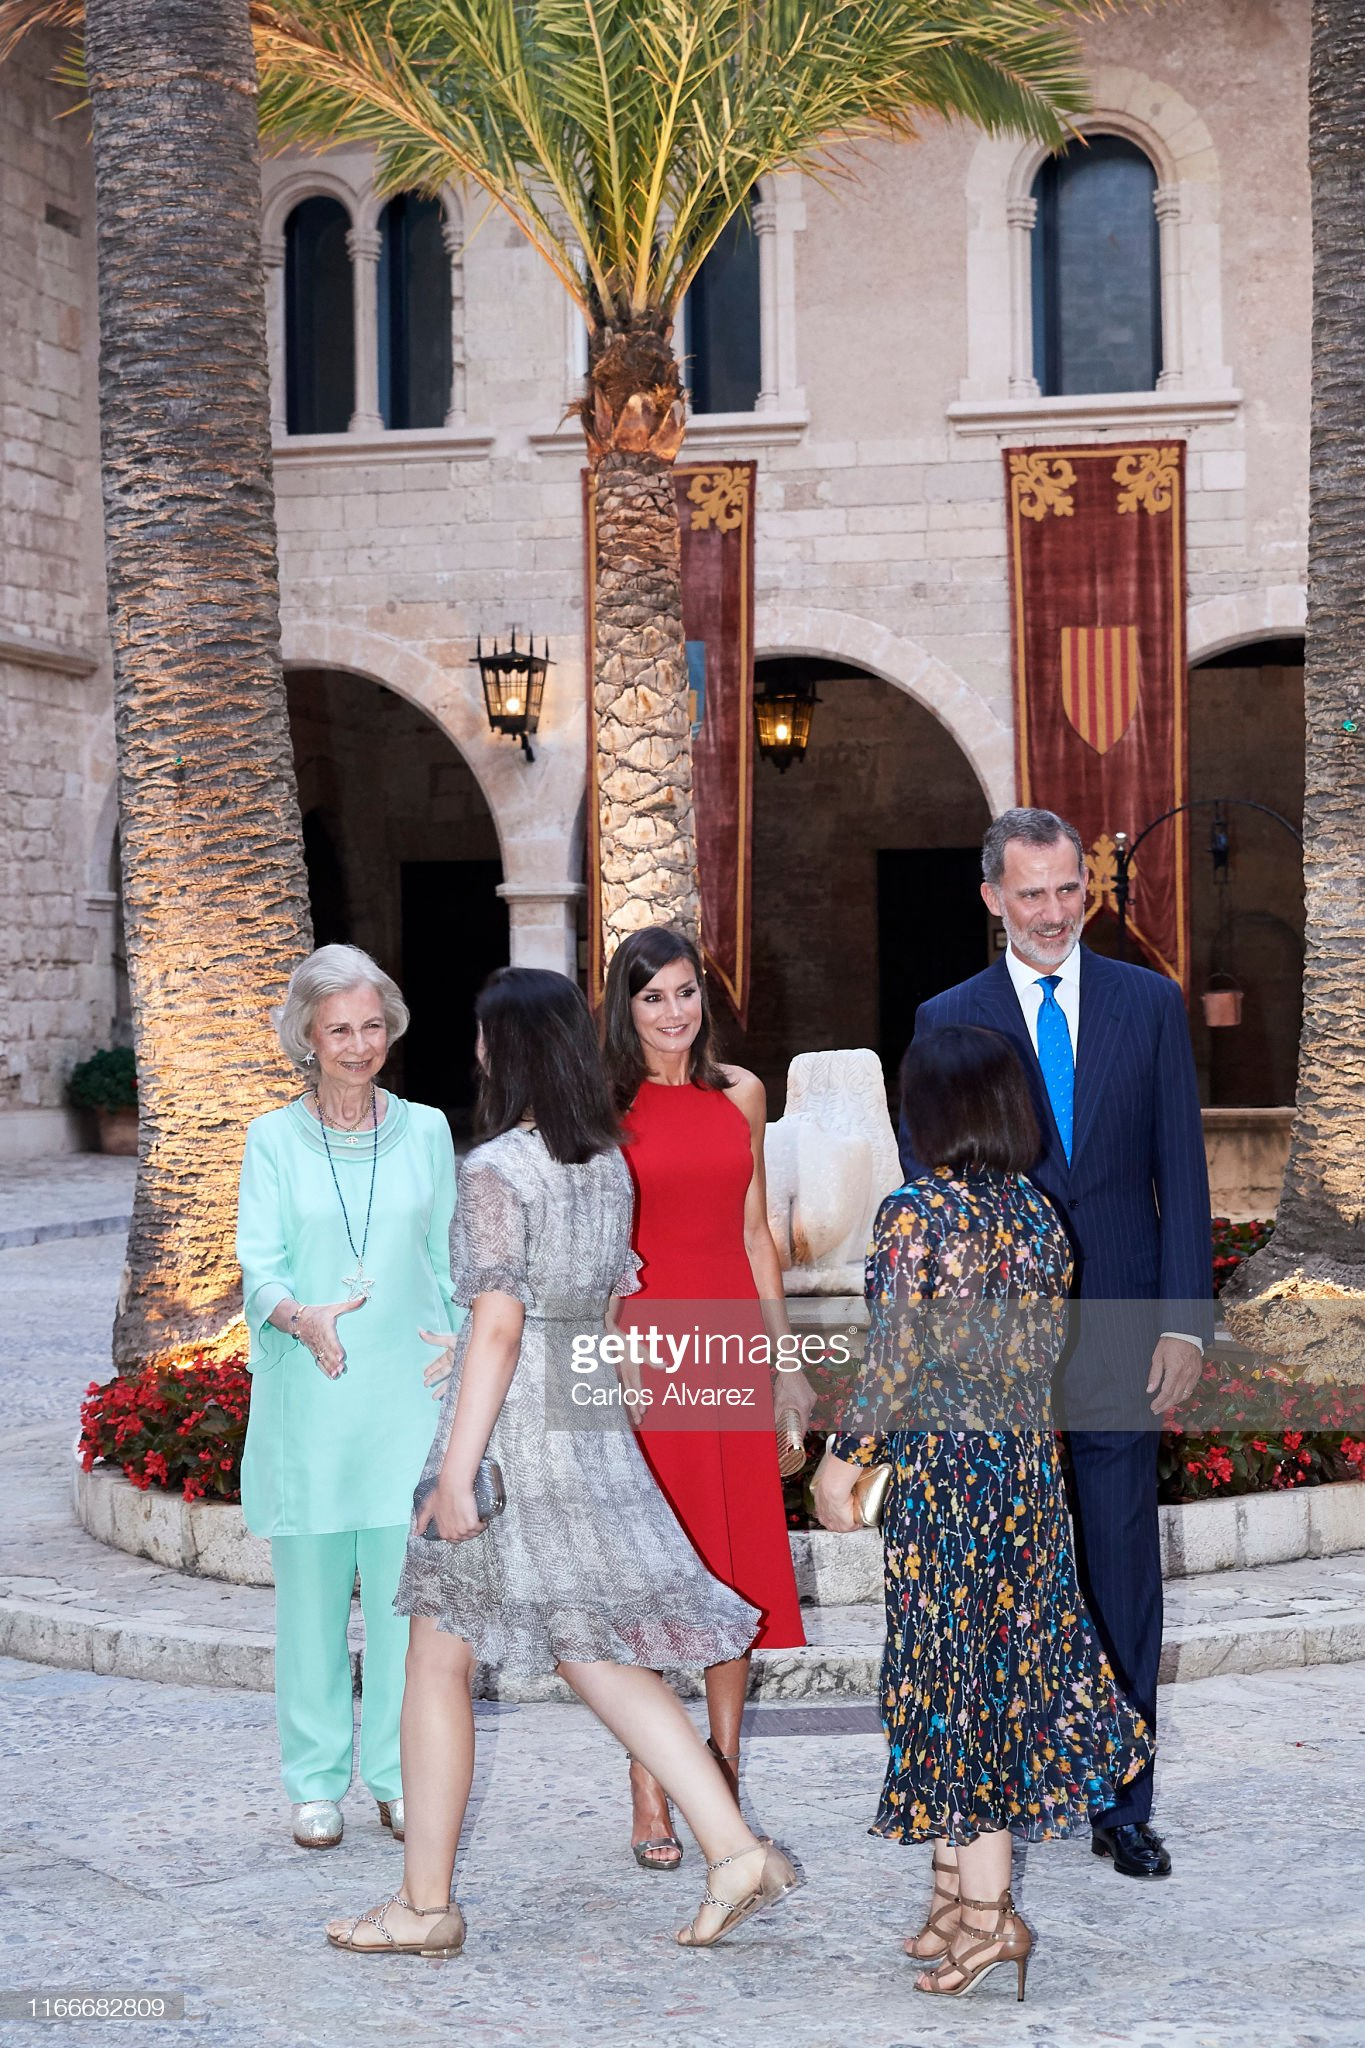 https://media.gettyimages.com/photos/king-felipe-vi-of-spain-queen-letizia-of-spain-and-queen-sofia-host-a-picture-id1166682809?s=2048x2048